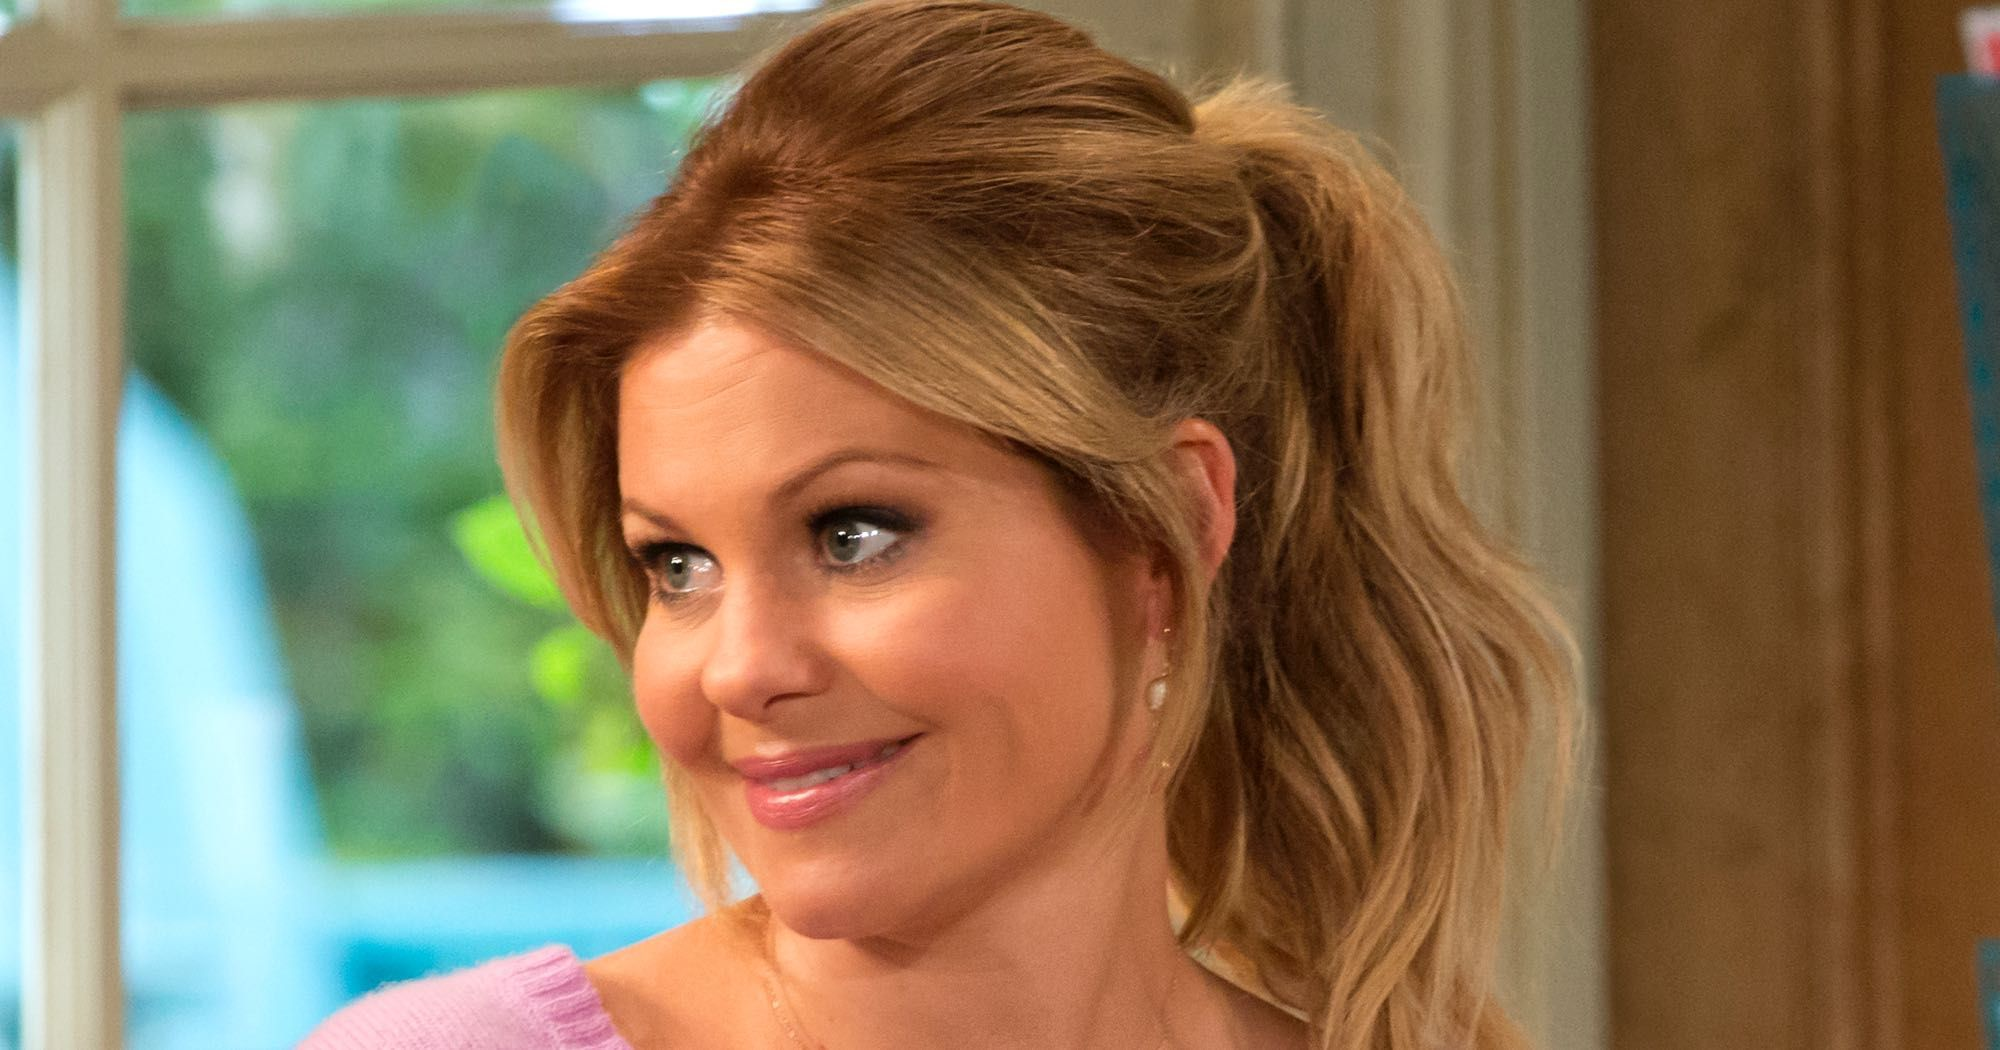 Candace Cameron Bure S Hair Is Completely Different Now Candace Cameron Bure Hairstyles Cameron Hair Candice Cameron Hair